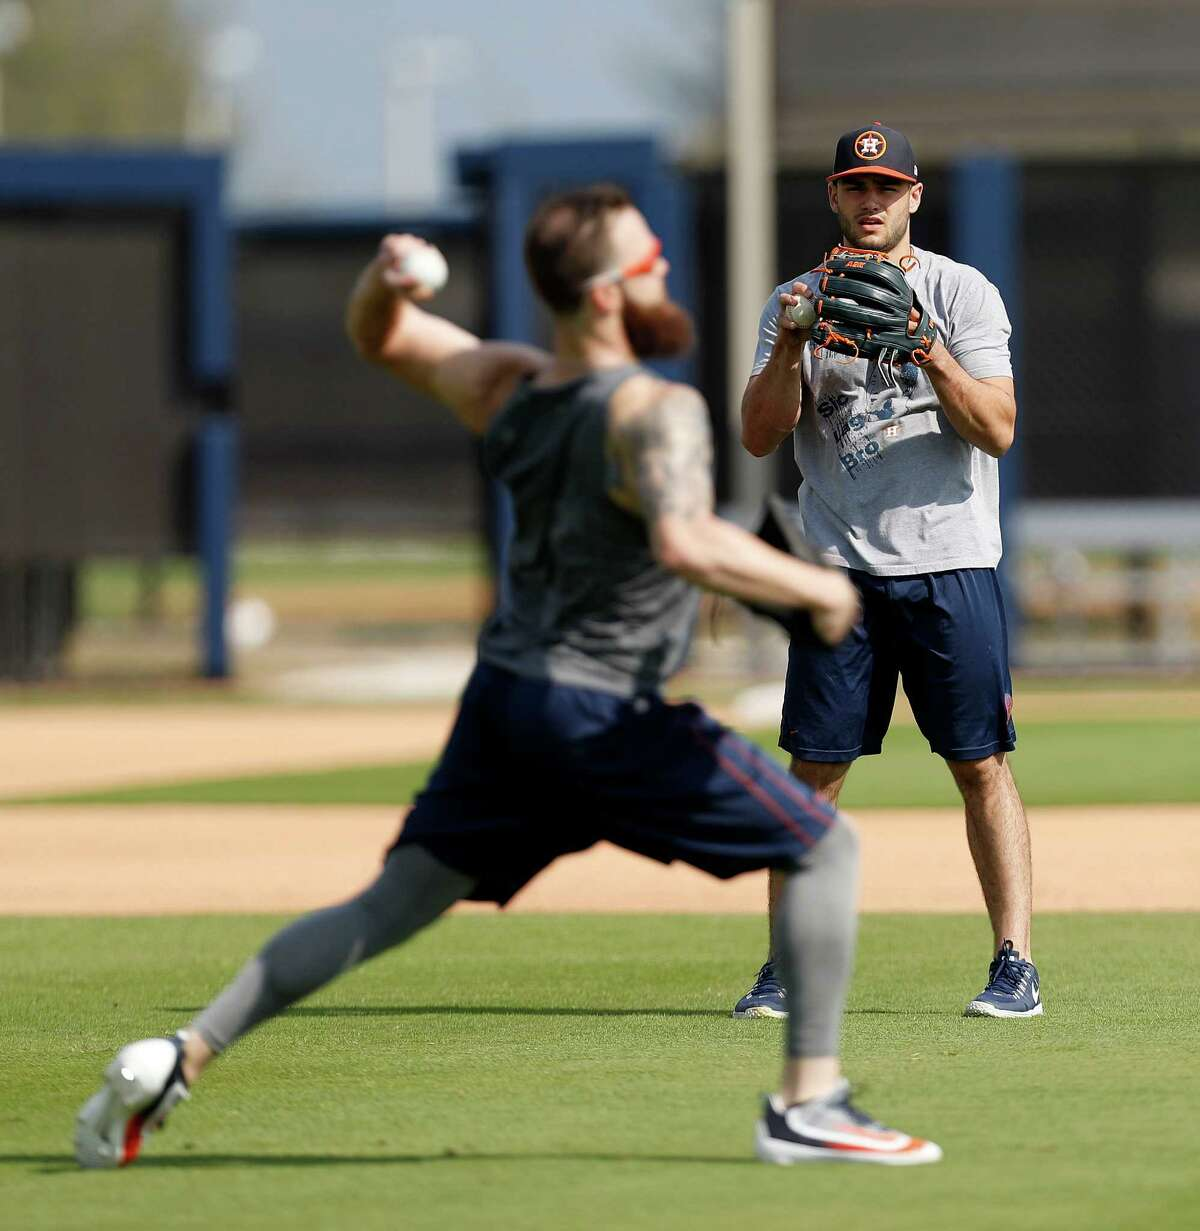 Houston Astros starting pitcher Lance McCullers and Dallas Keuchel throw during Astros pitchers and catchers report day at the Astros new spring training facility, The Ballpark of the Palm Beaches, in West Palm Beach, Florida, Tuesday, February 14, 2017. The Astros share the new ballpark with the Washington Nationals.